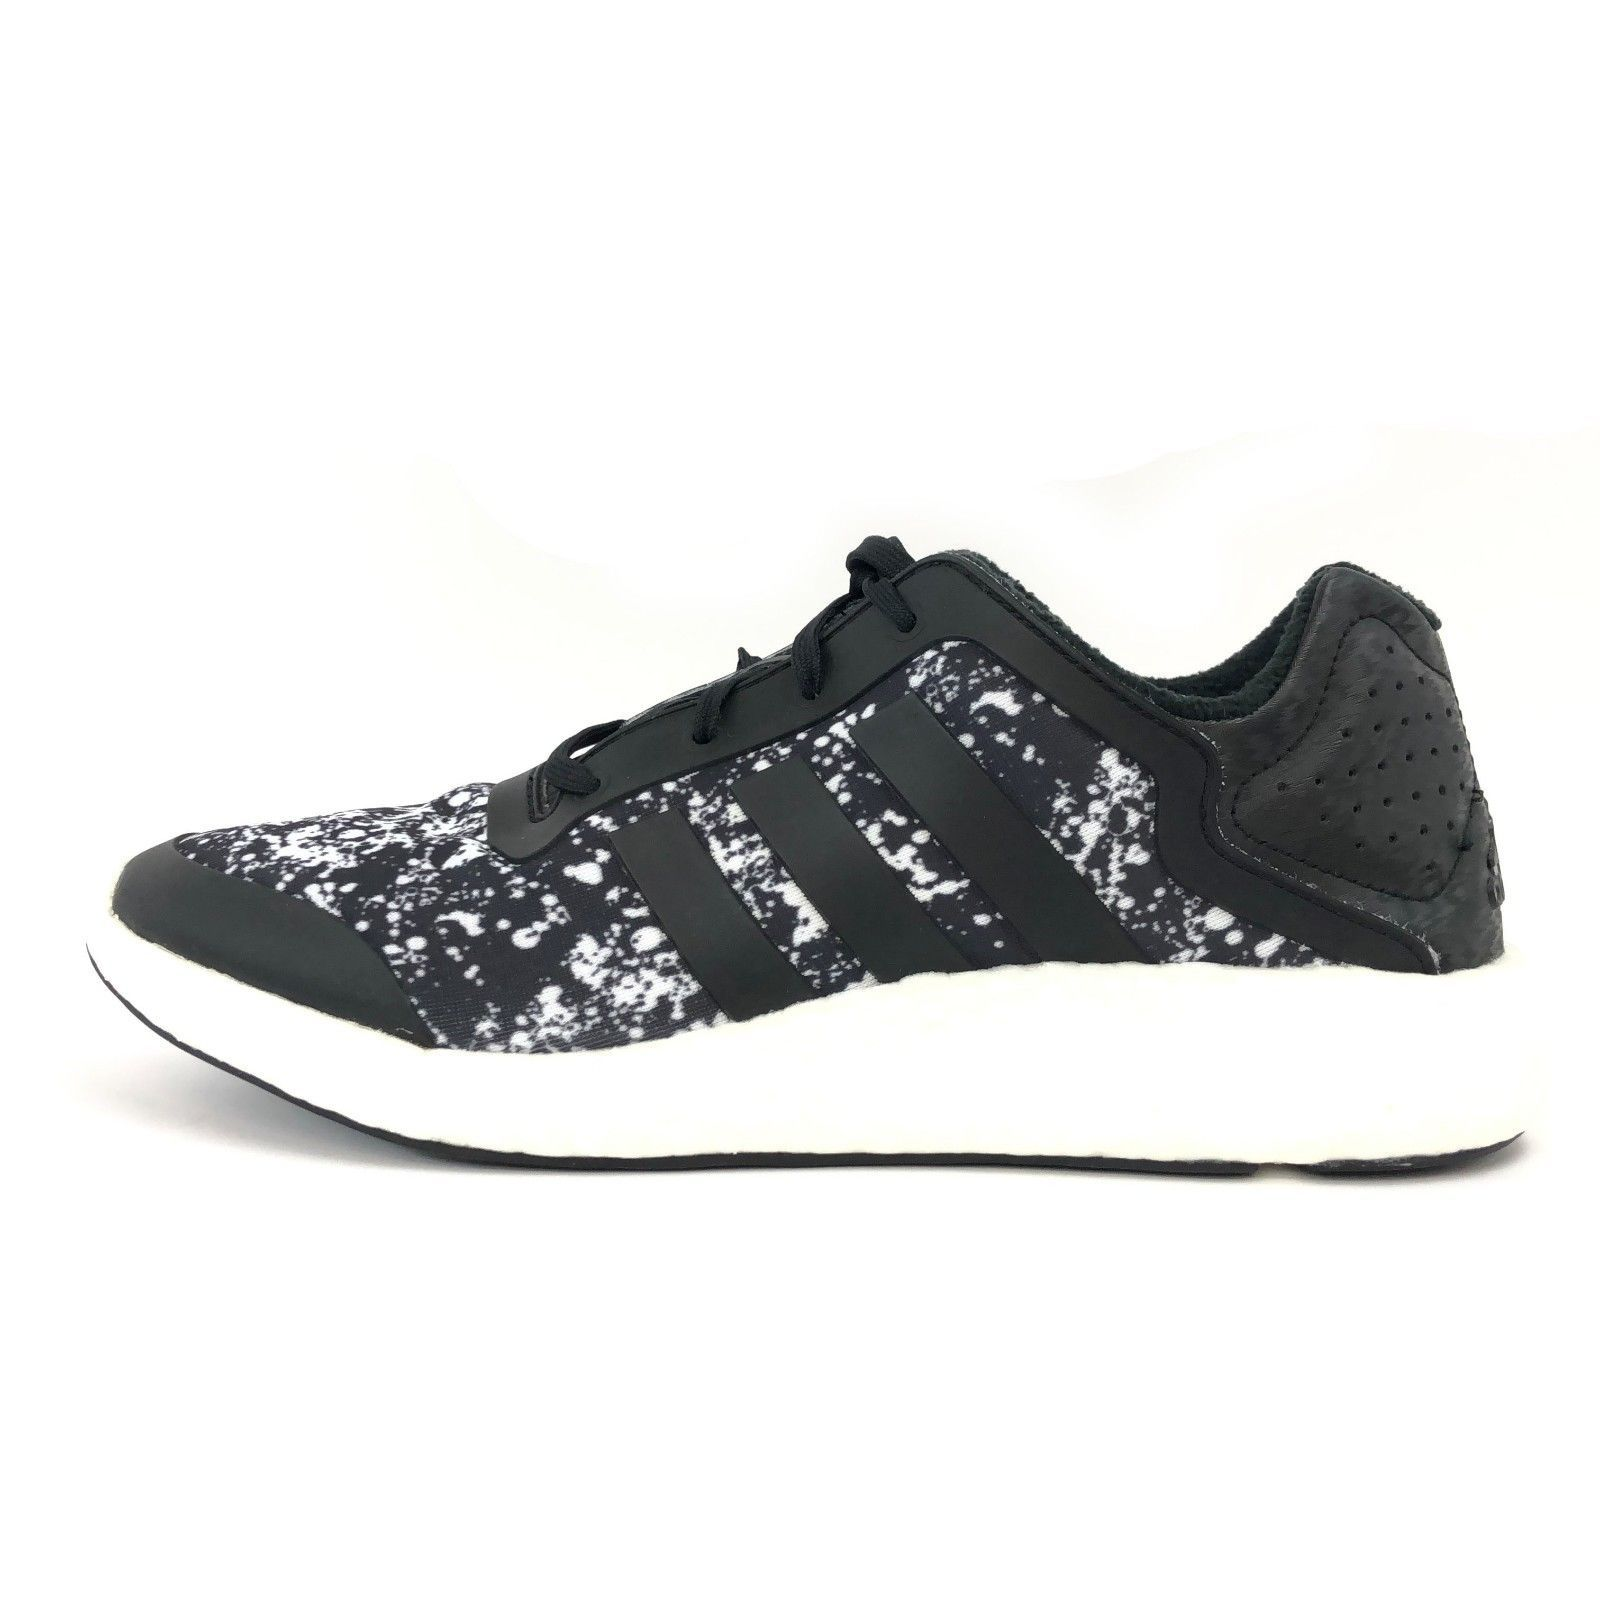 sports shoes ad649 09cba S l1600. S l1600. Previous. Adidas Womens Pure Boost Core Black  White  Gym Running Shoes M21408